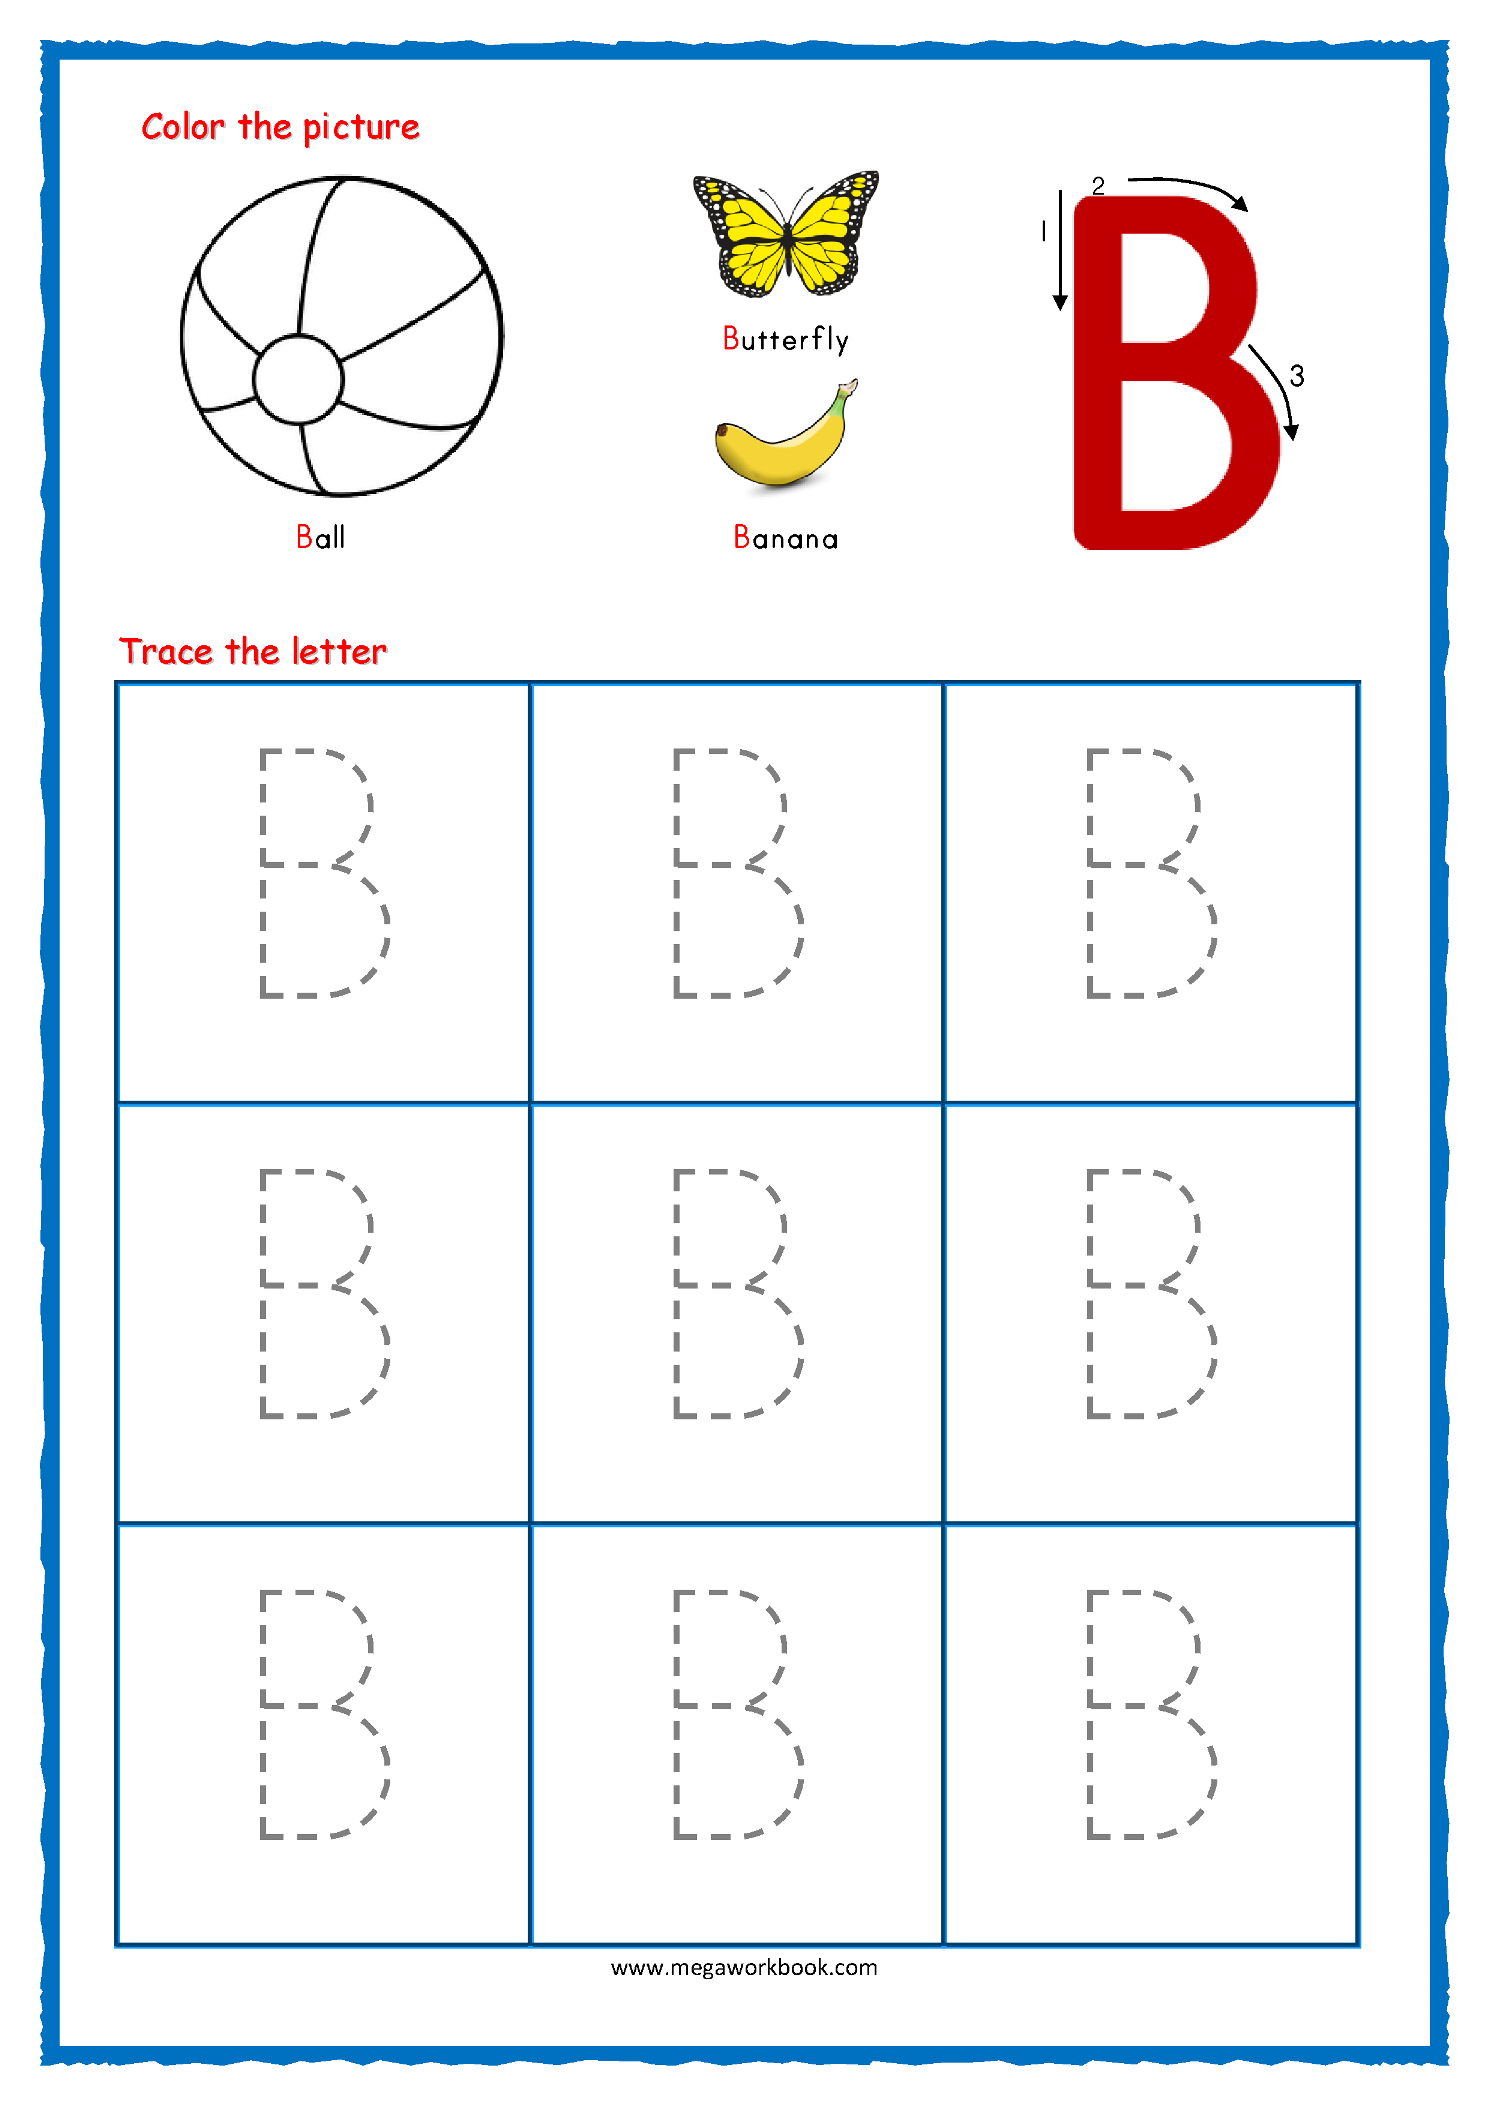 Tracing Letters - Alphabet Tracing - Capital Letters for Letter Tracing Worksheets A-Z Pdf